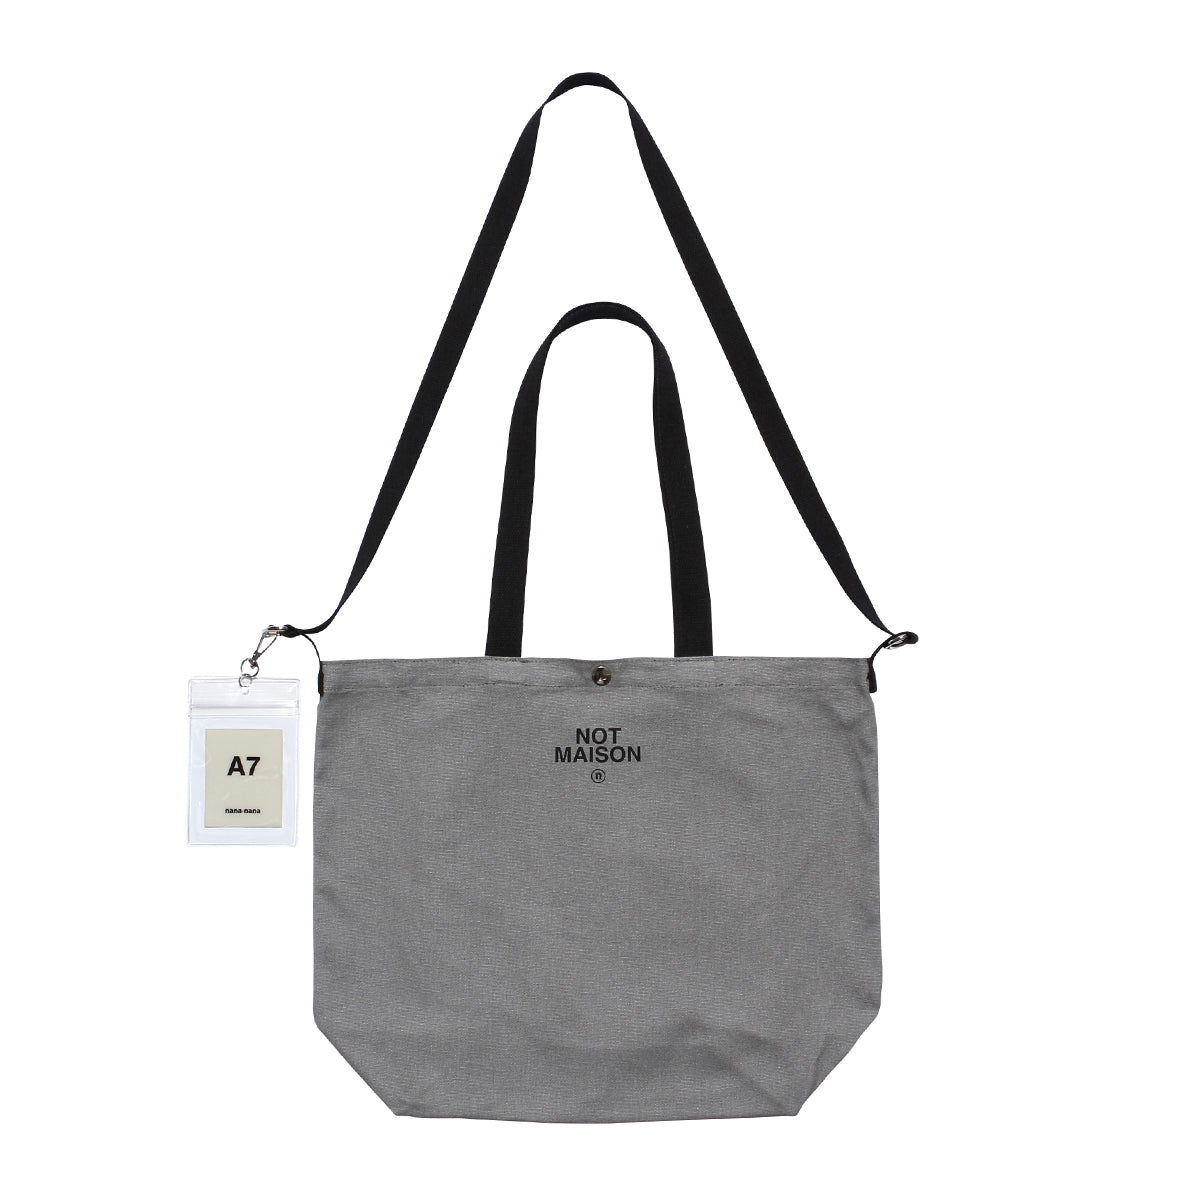 NOT MAISON / M (TOTE BAG)